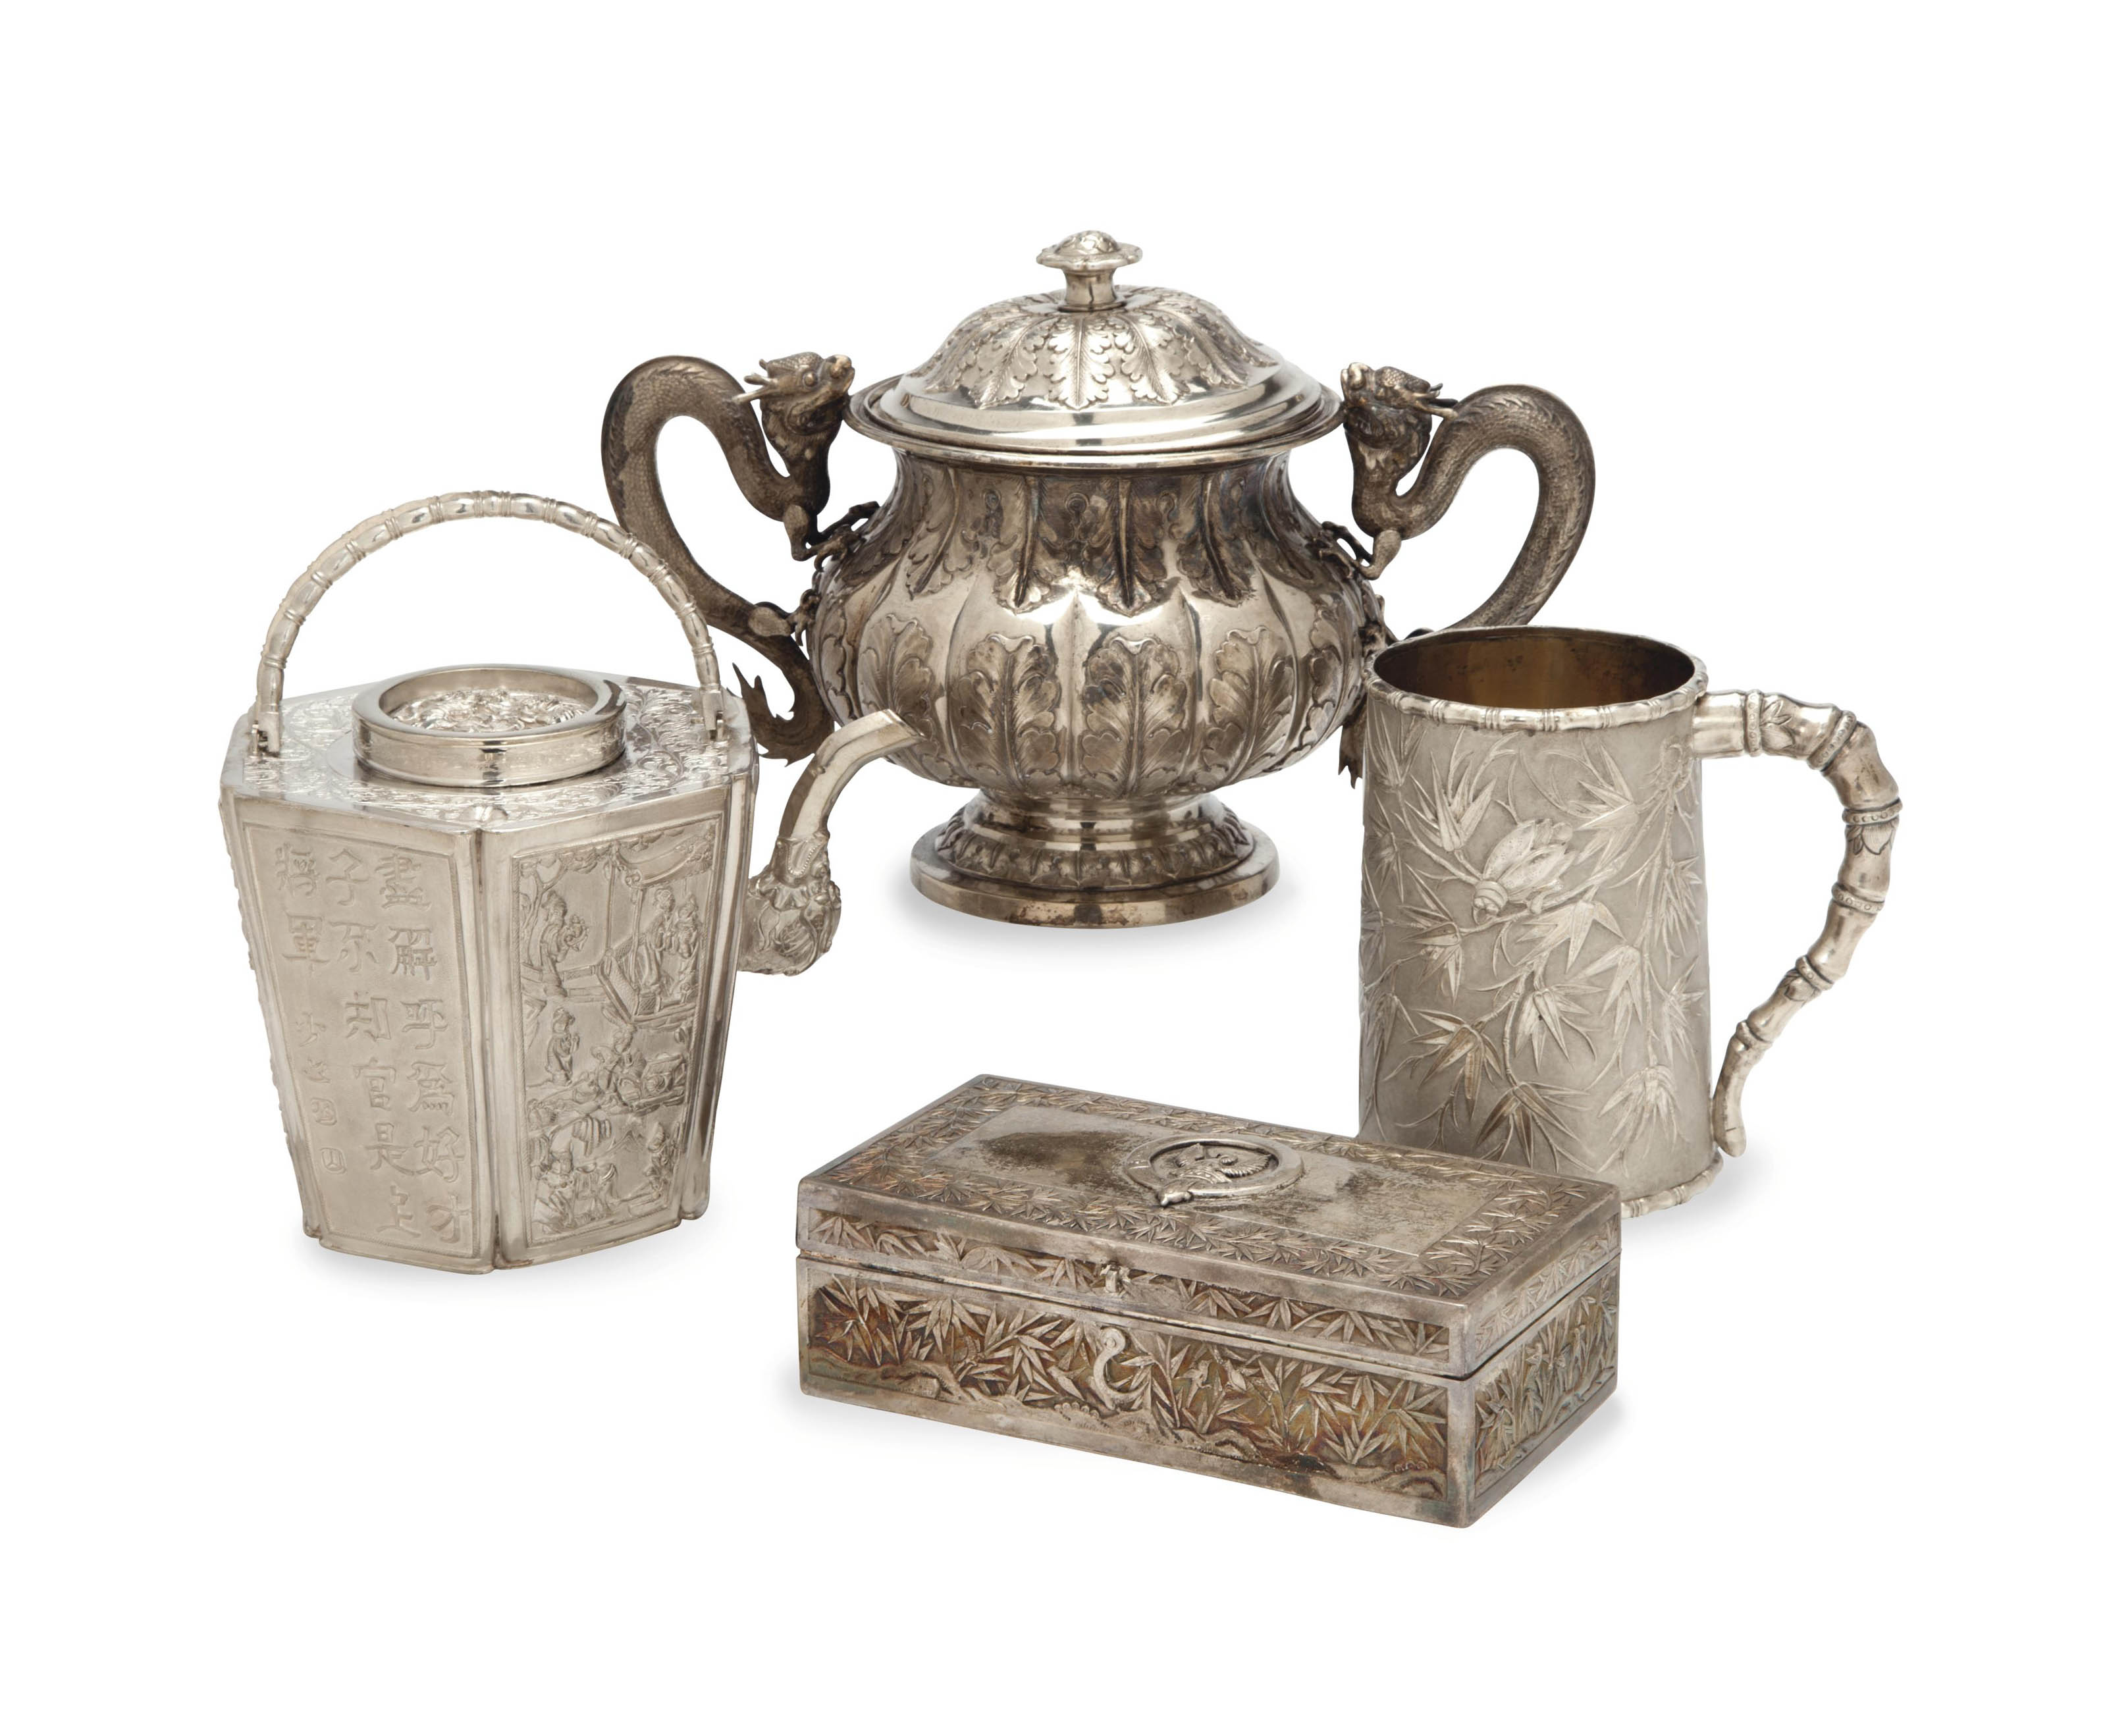 FOUR CHINESE EXPORT SILVER TABLEWARES,